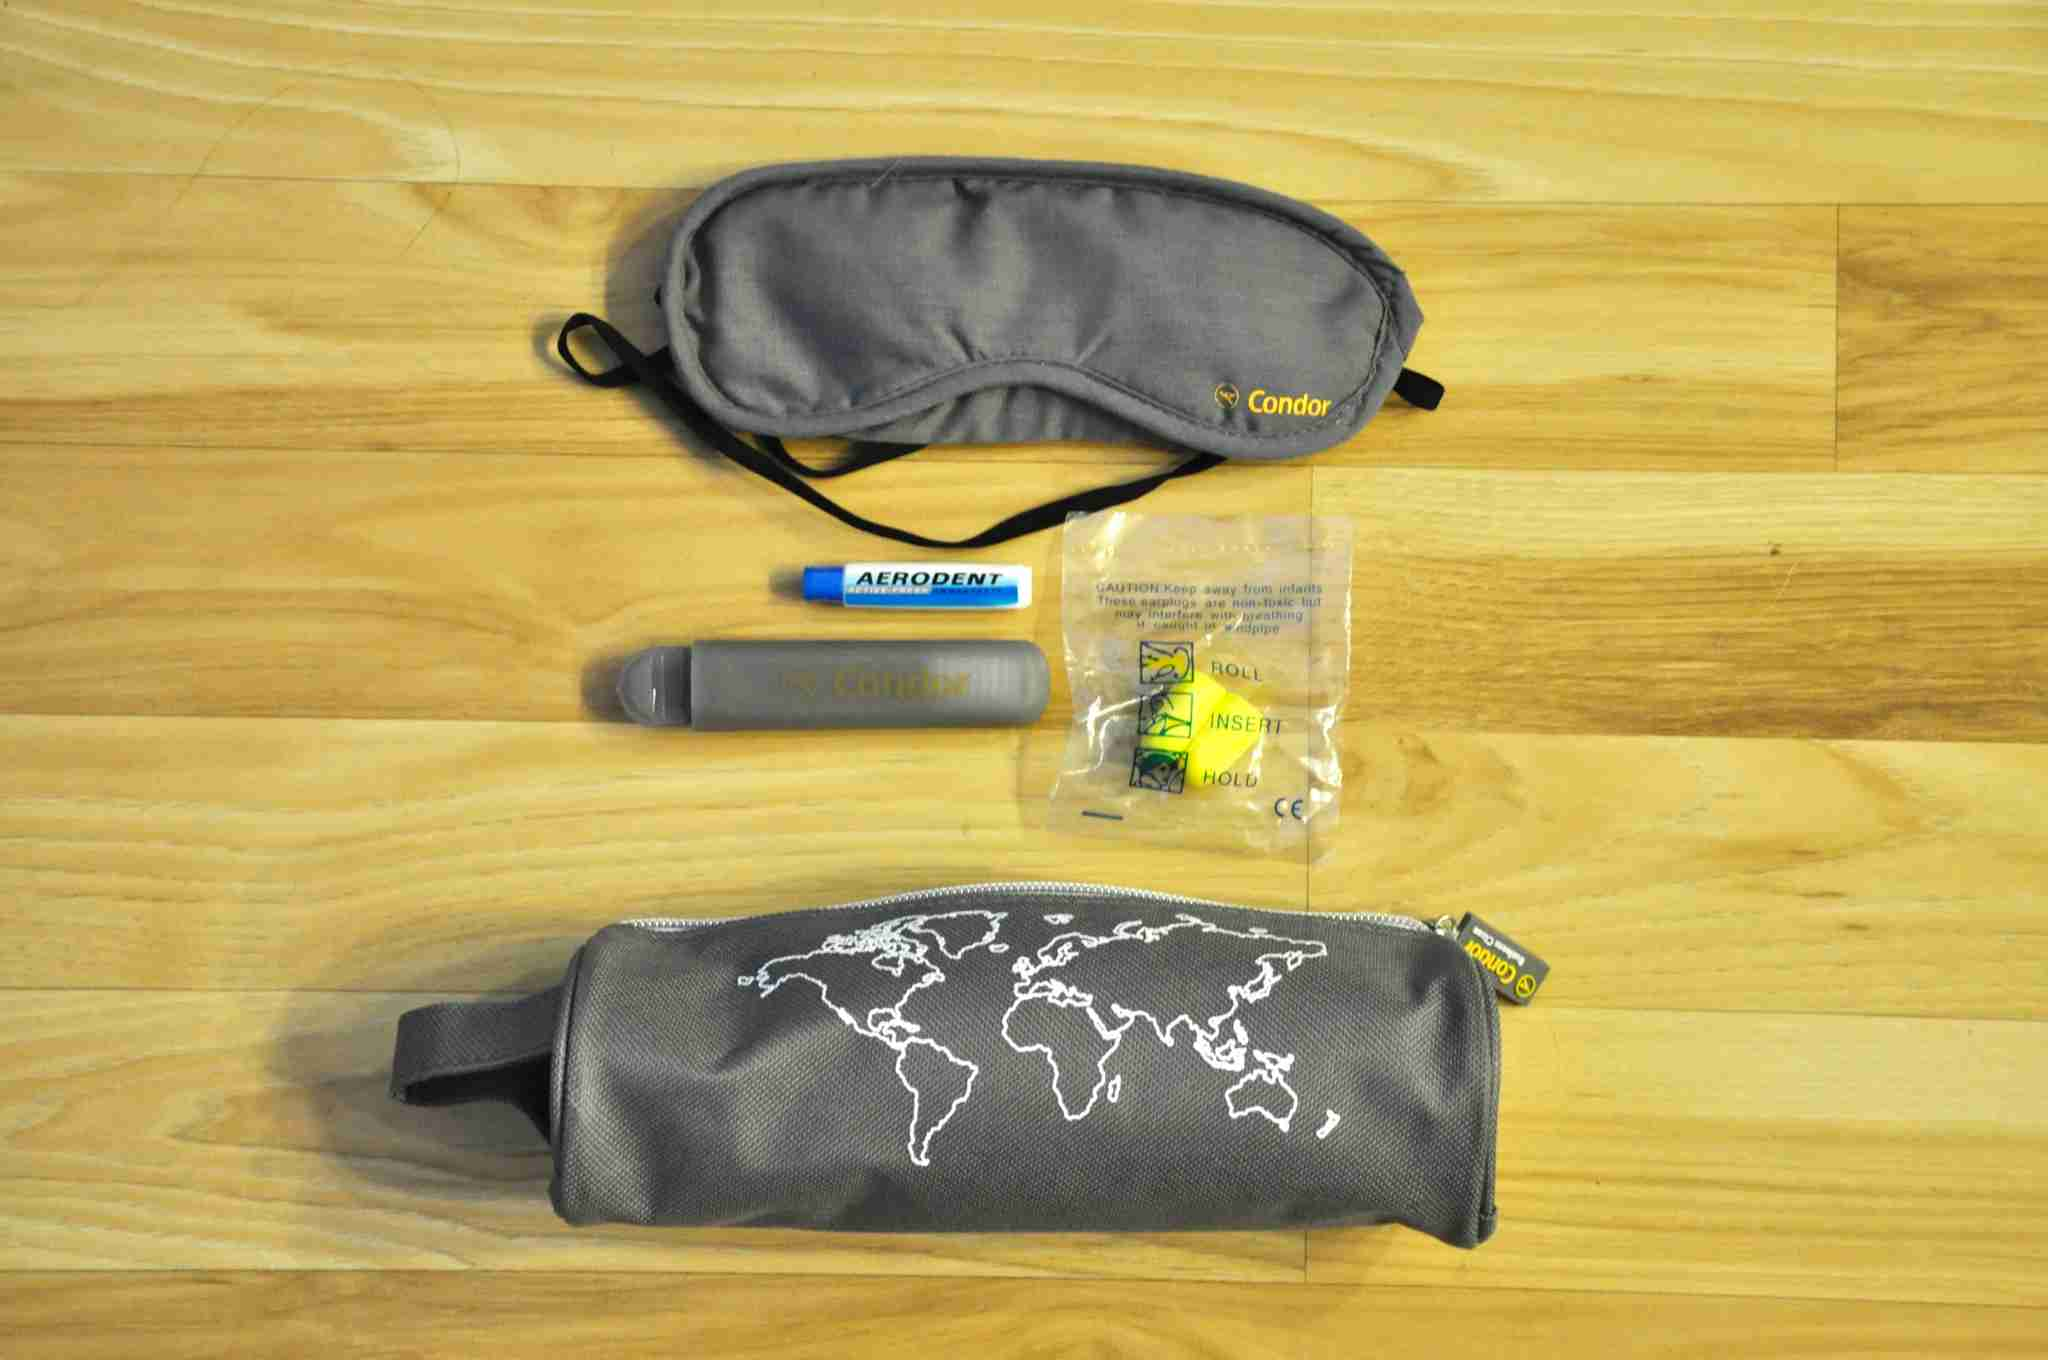 Condor Airlines Business Class amenity kit